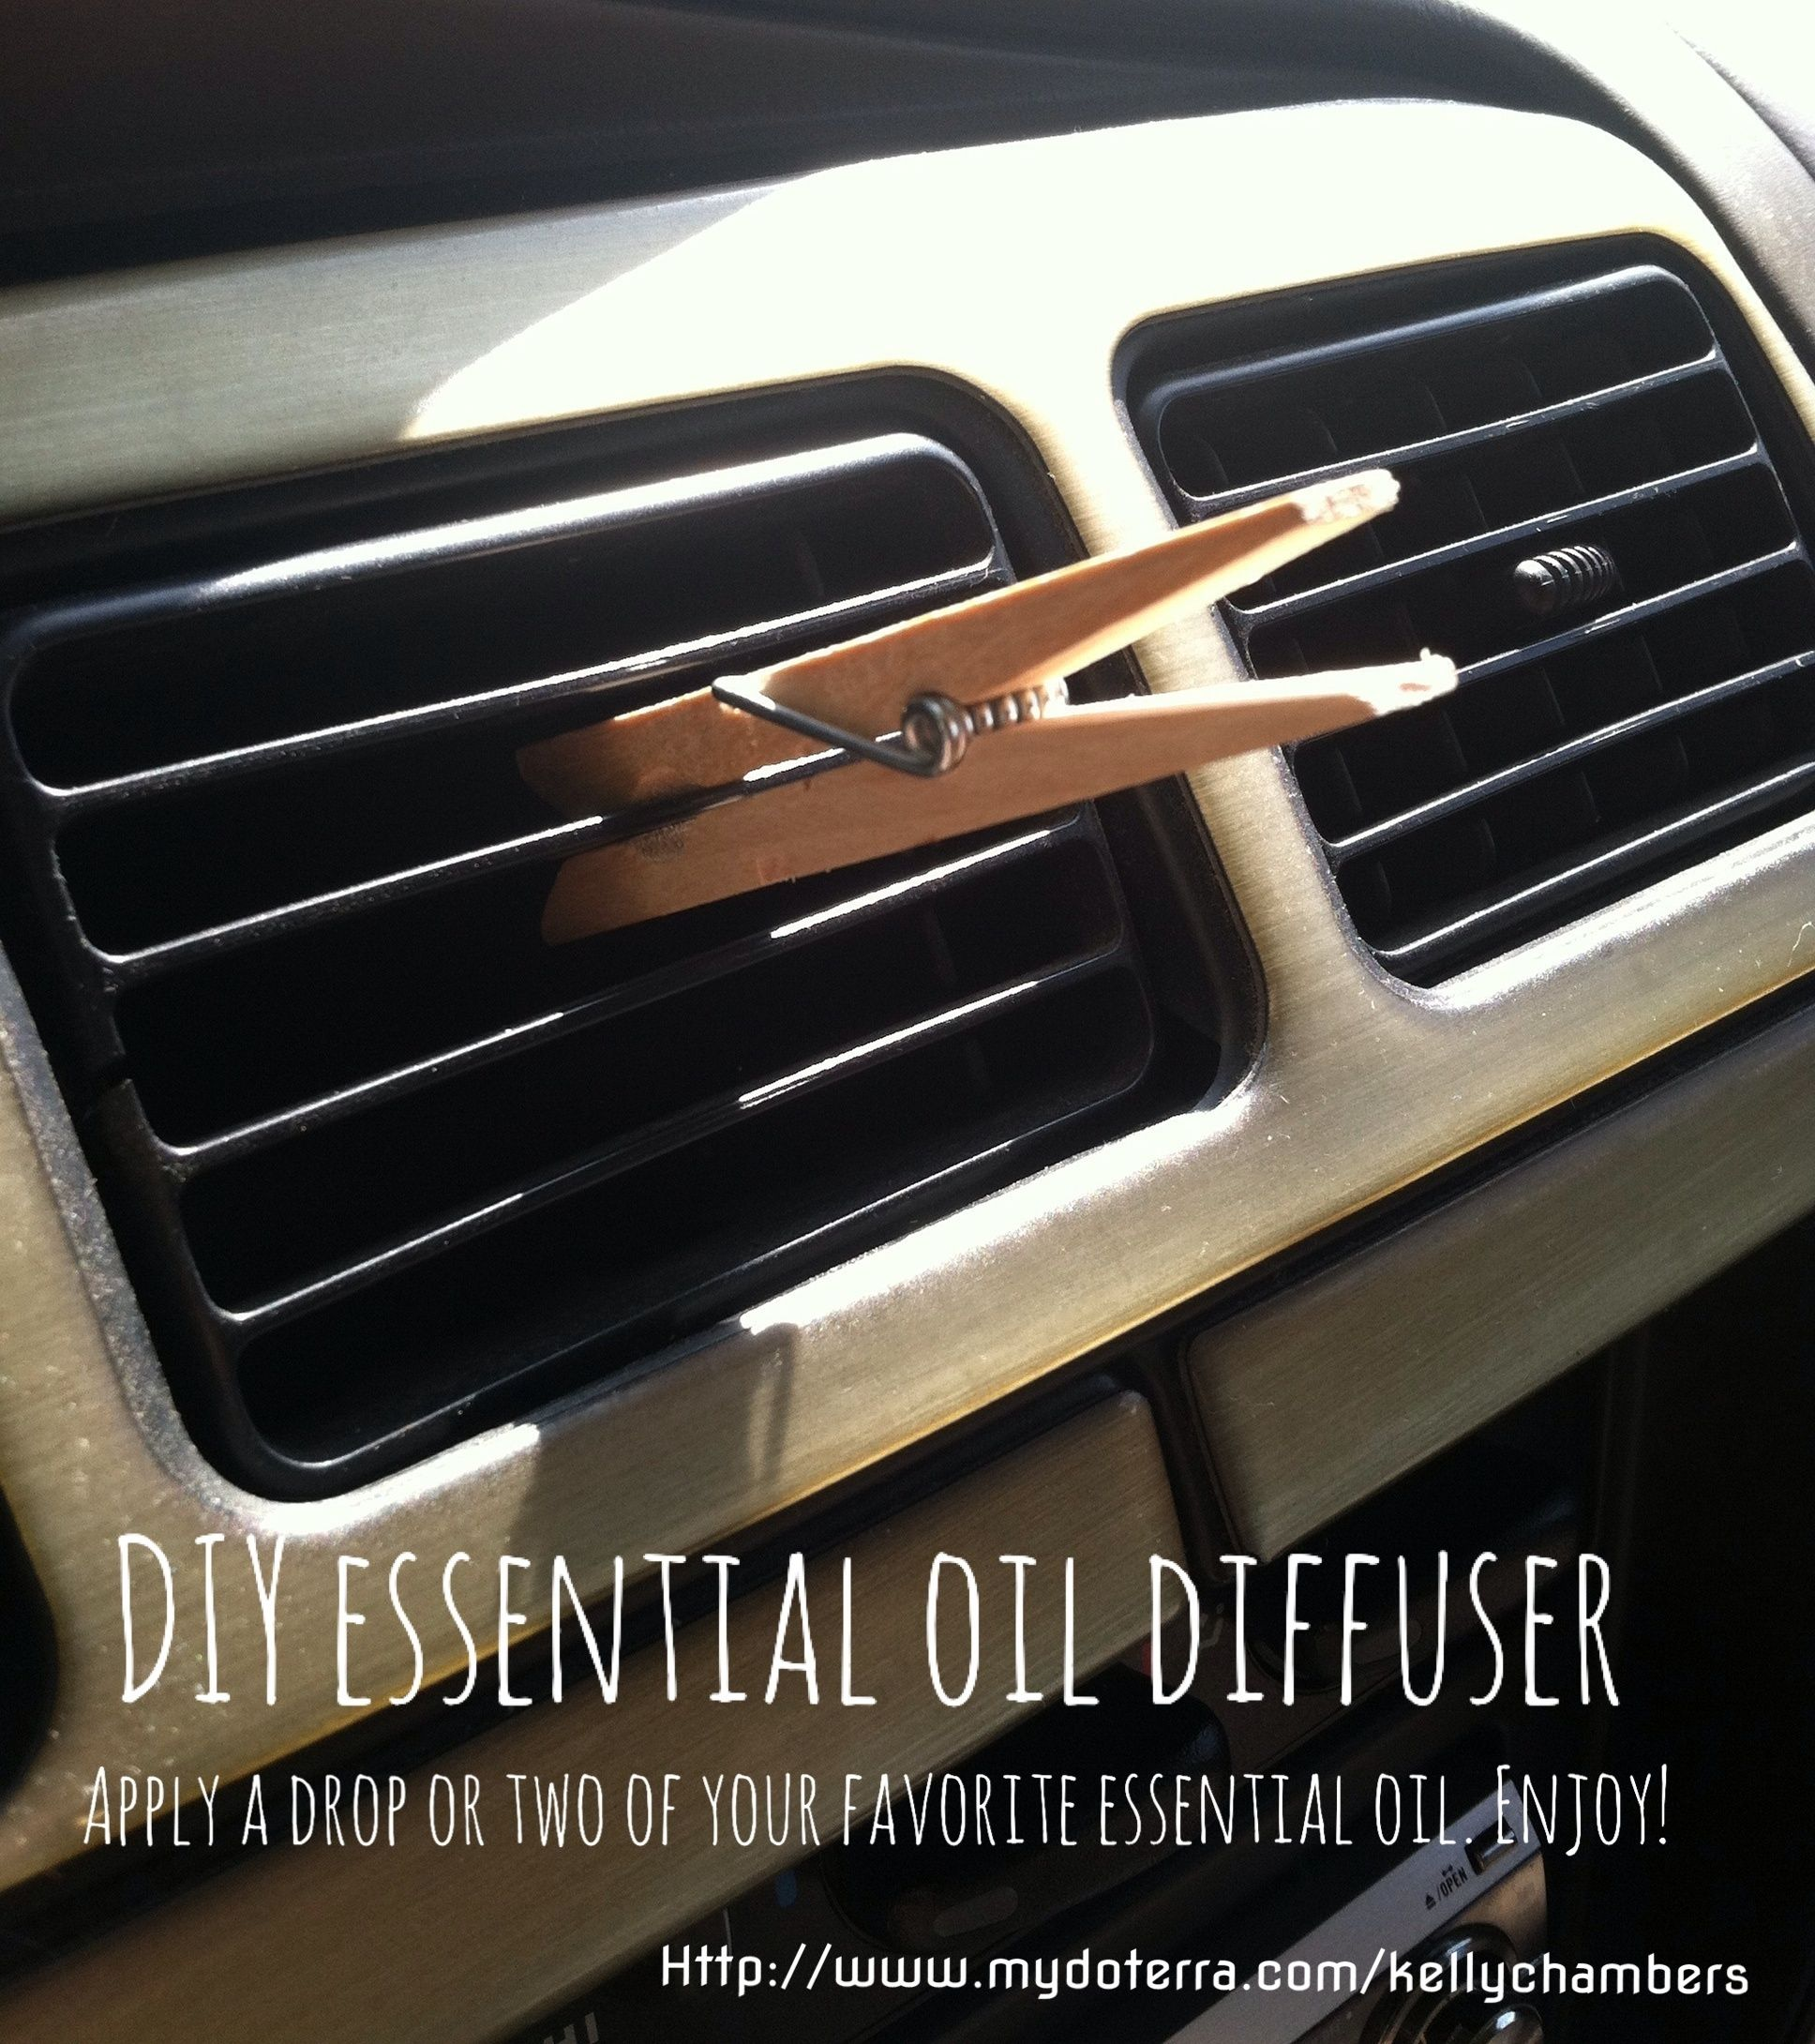 DIY car essential oil diffuser. Simple and easy. Just clip a clothespin to your car's air vent, apply a couple drops of your favorite essential oil to the clothespin, then breathe deeply. Enjoy!